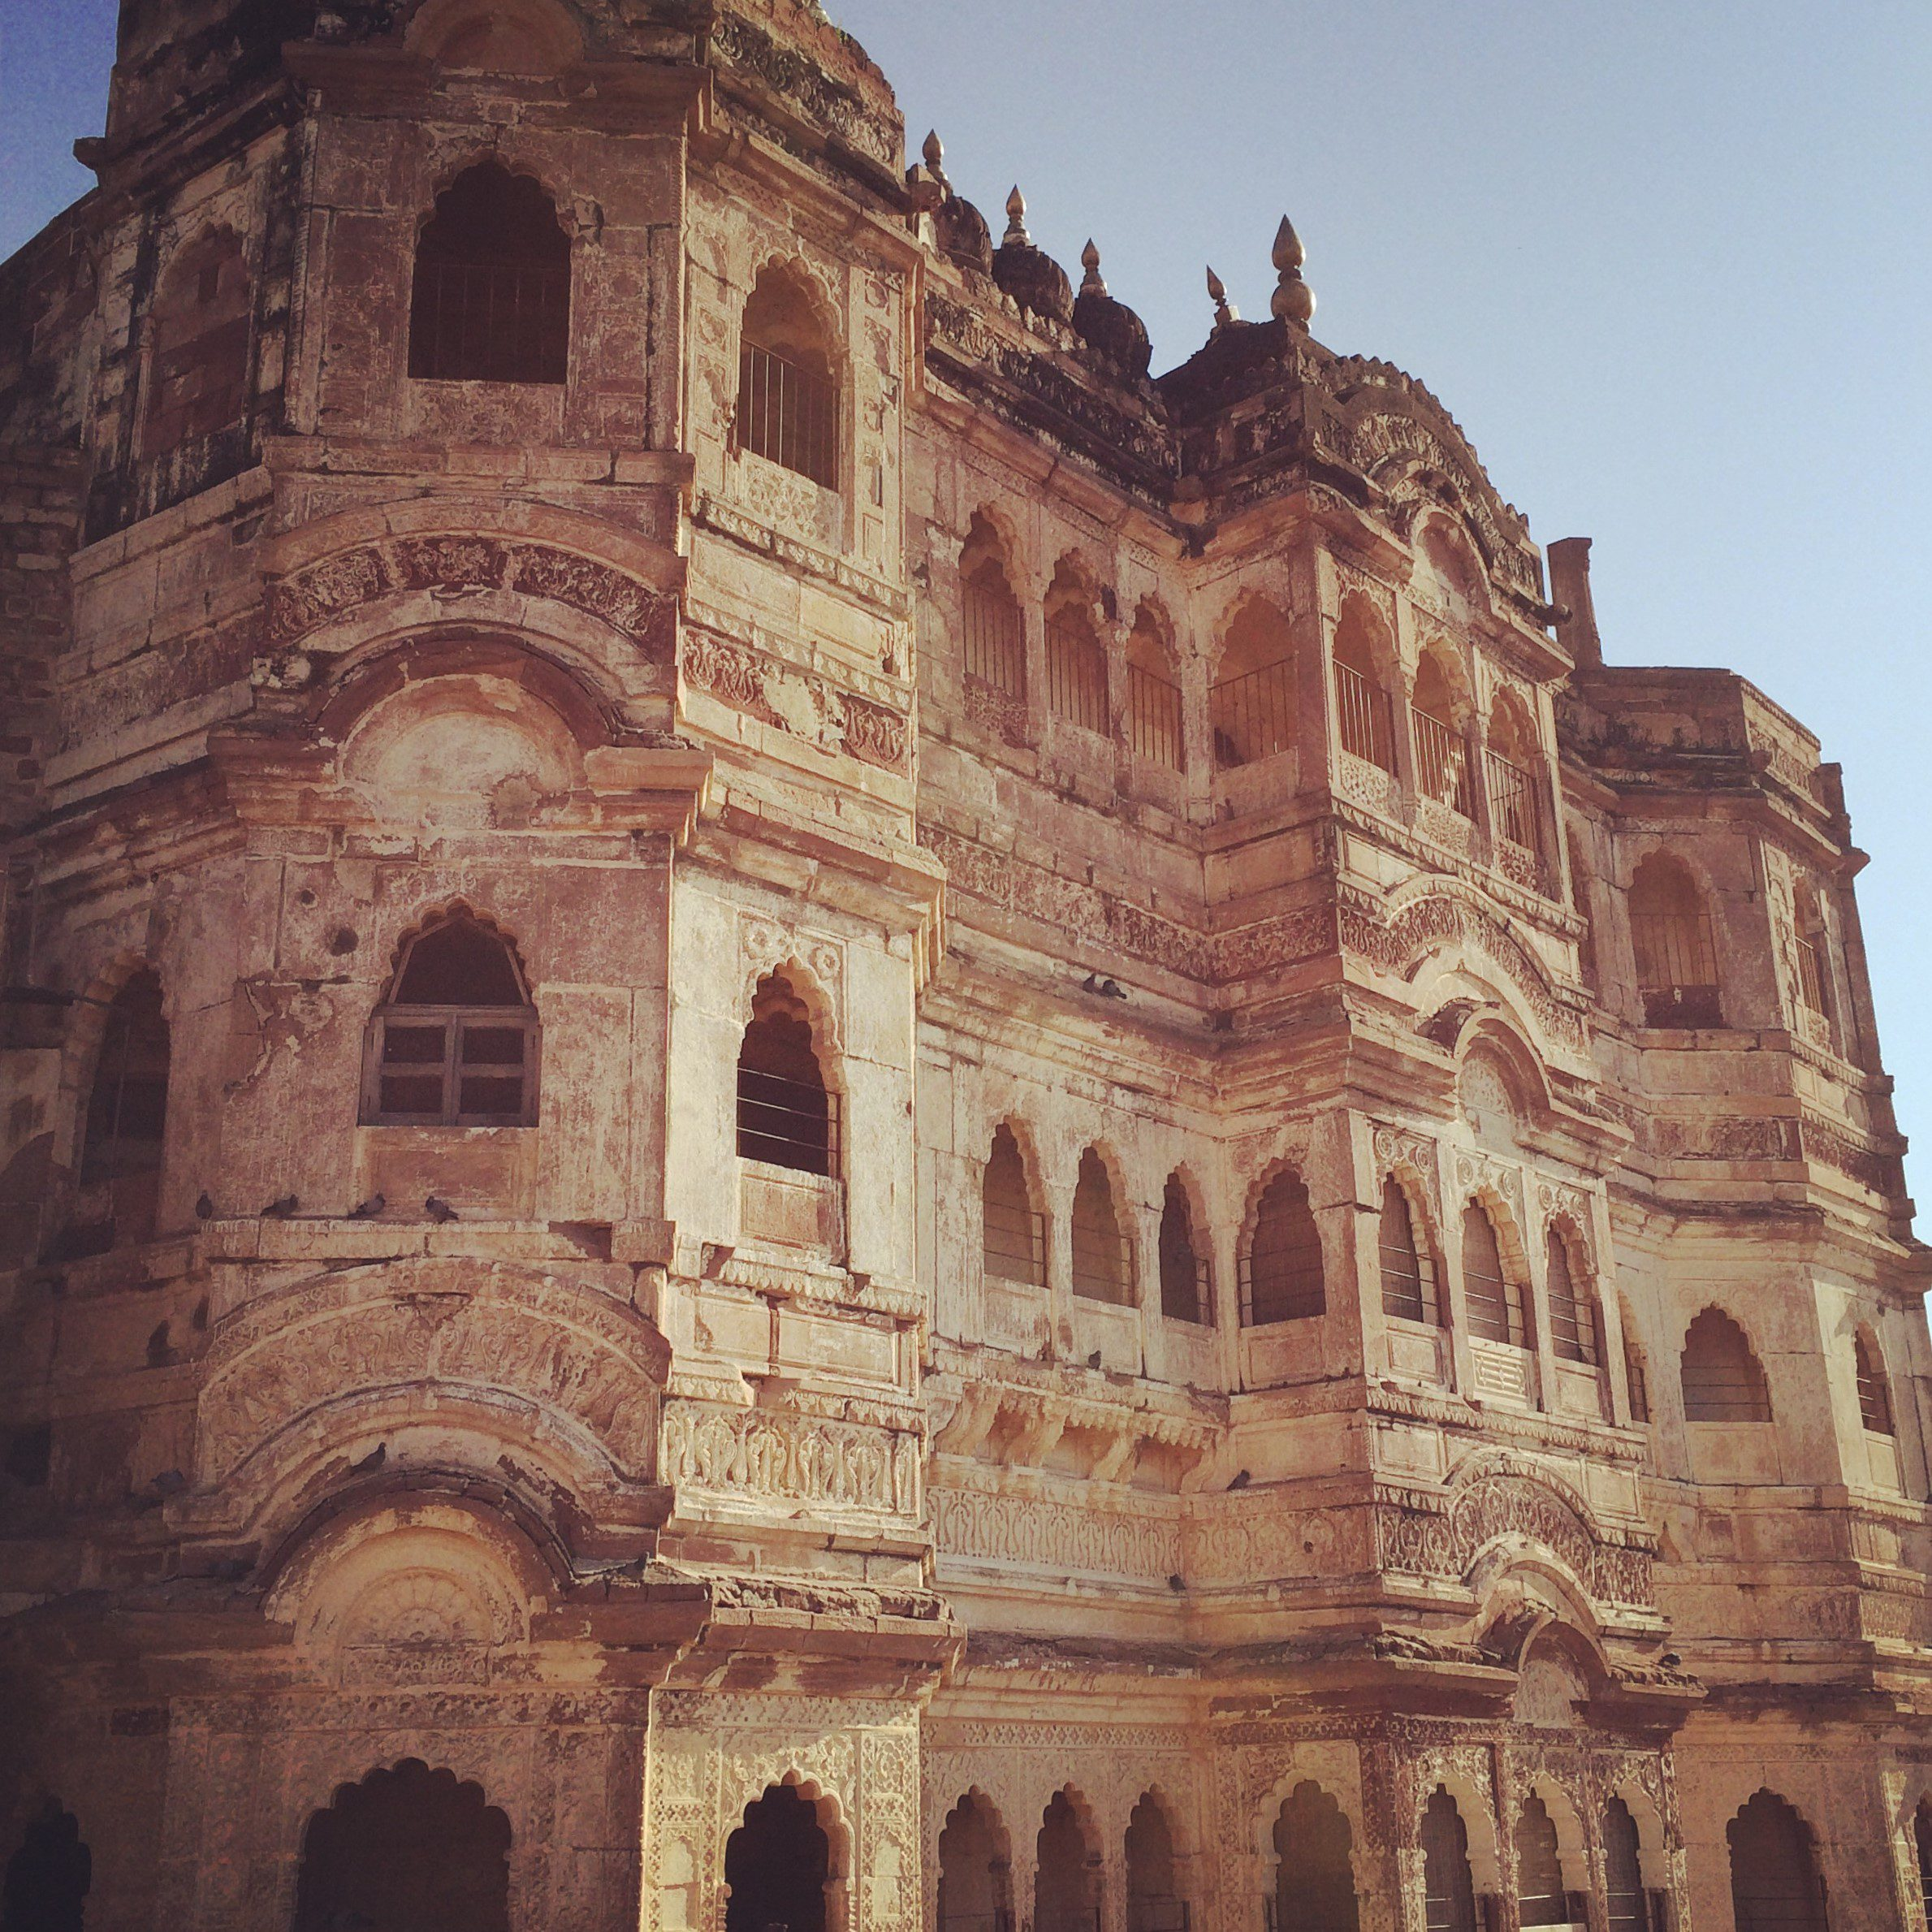 closeup of the architectural details on one side of Mehrangarh Fort